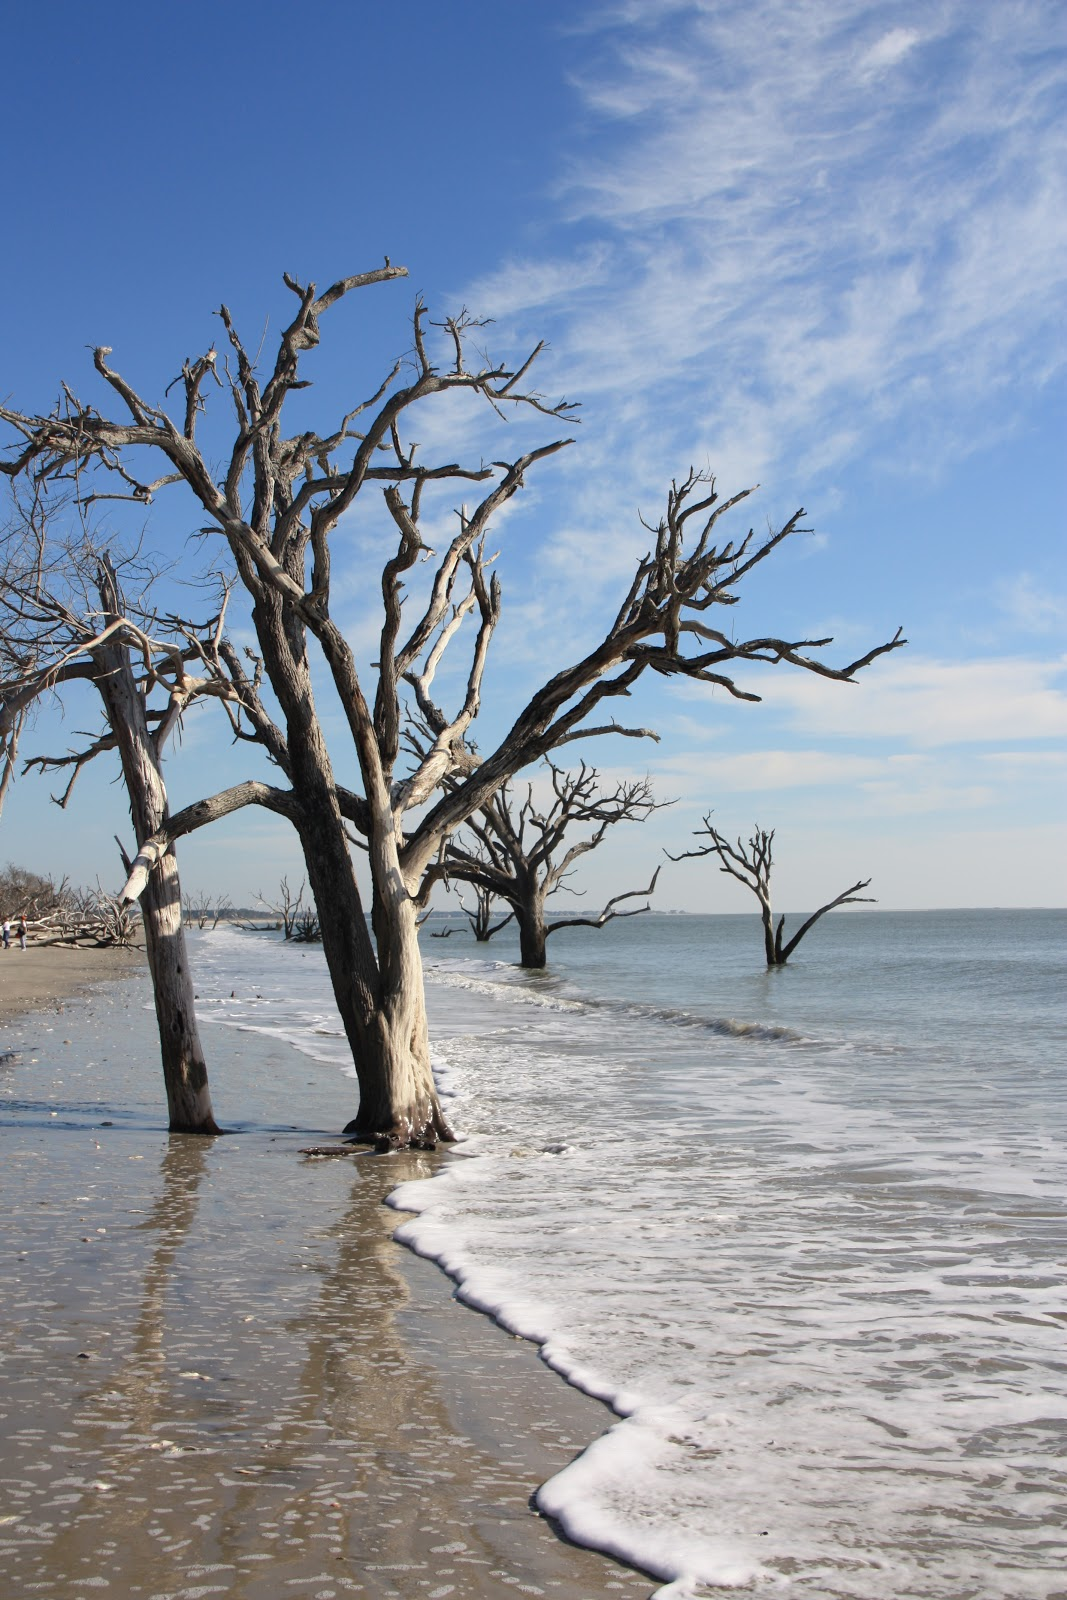 A Is For Adventure Botany Bay On Edisto Island